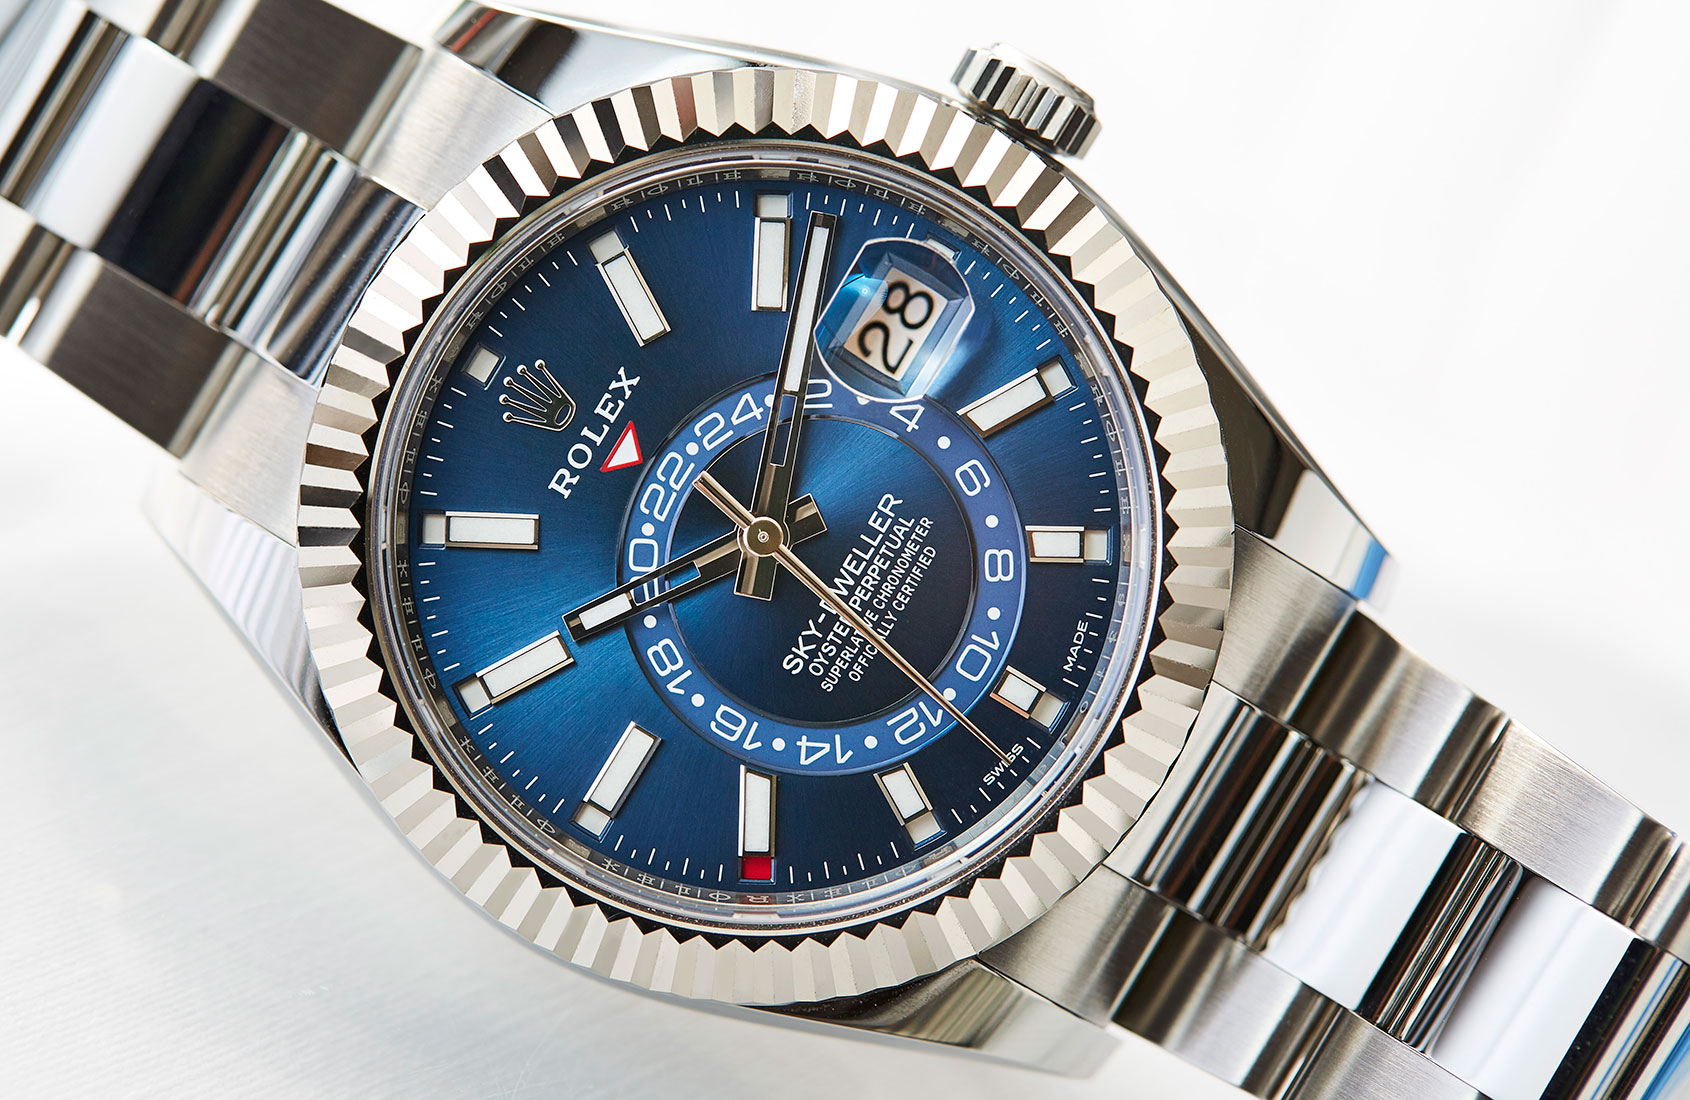 IN-DEPTH: The Rolex Sky-Dweller comes down to earth